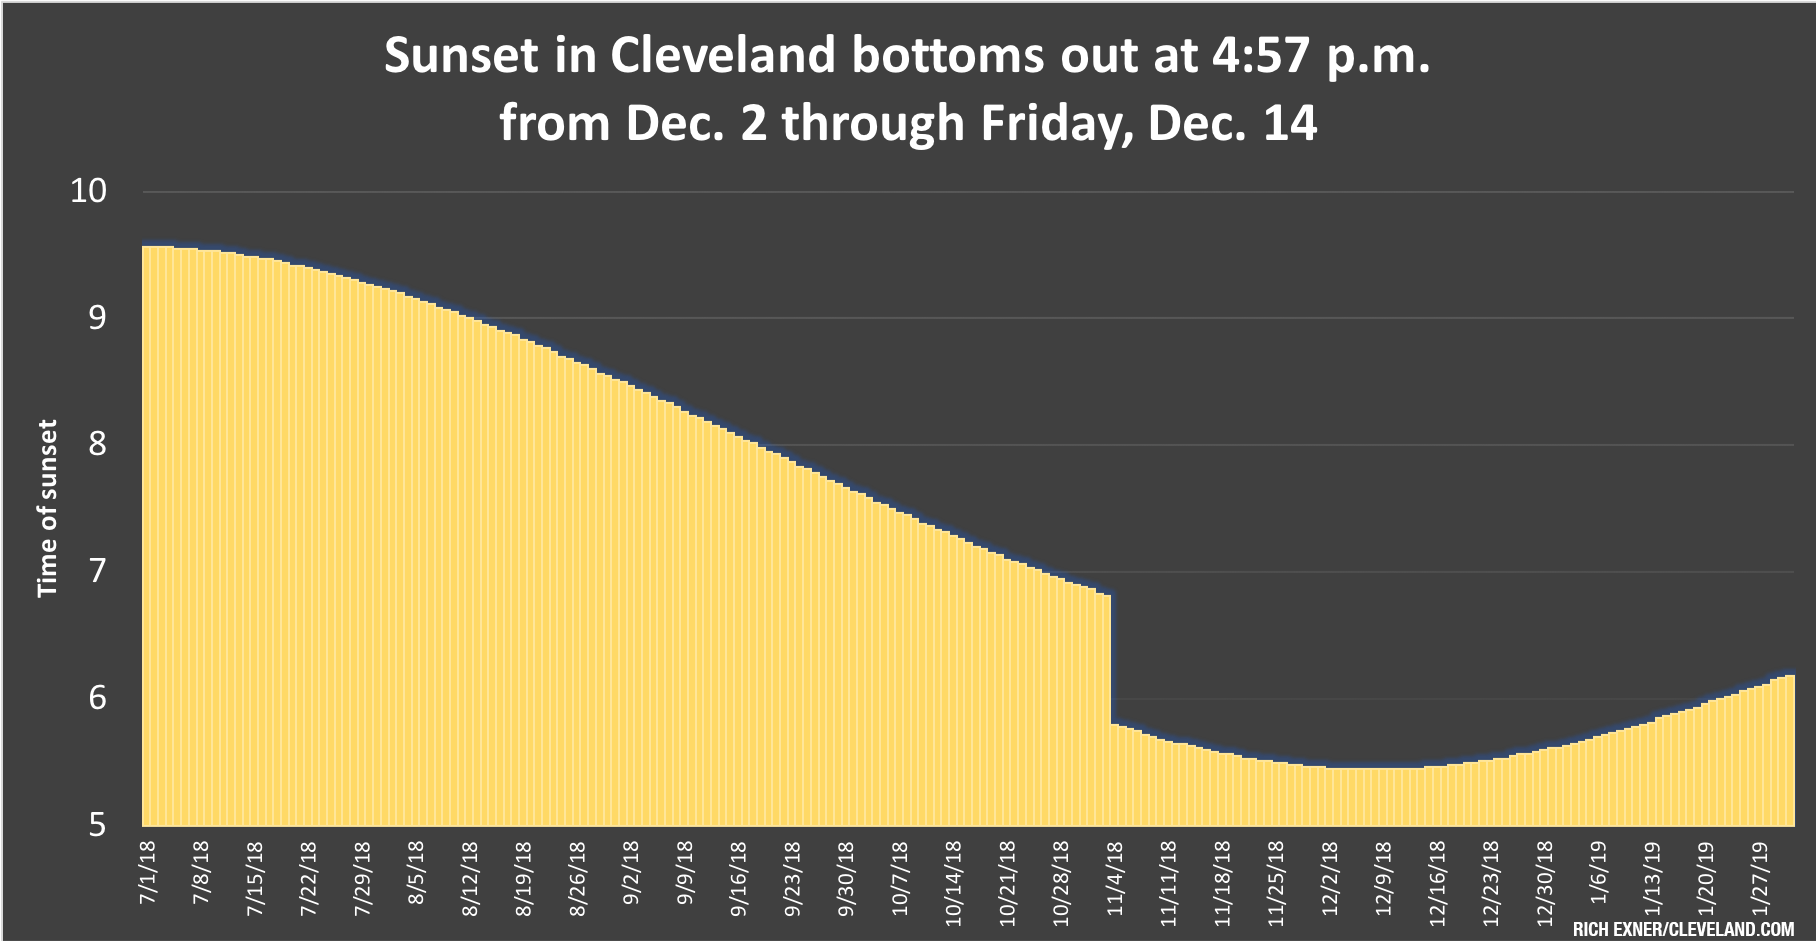 Getting Out Of The Dark: Cleveland Sunsets Begin Getting Intended For Chart Monthly Sunset Times By Zip Code